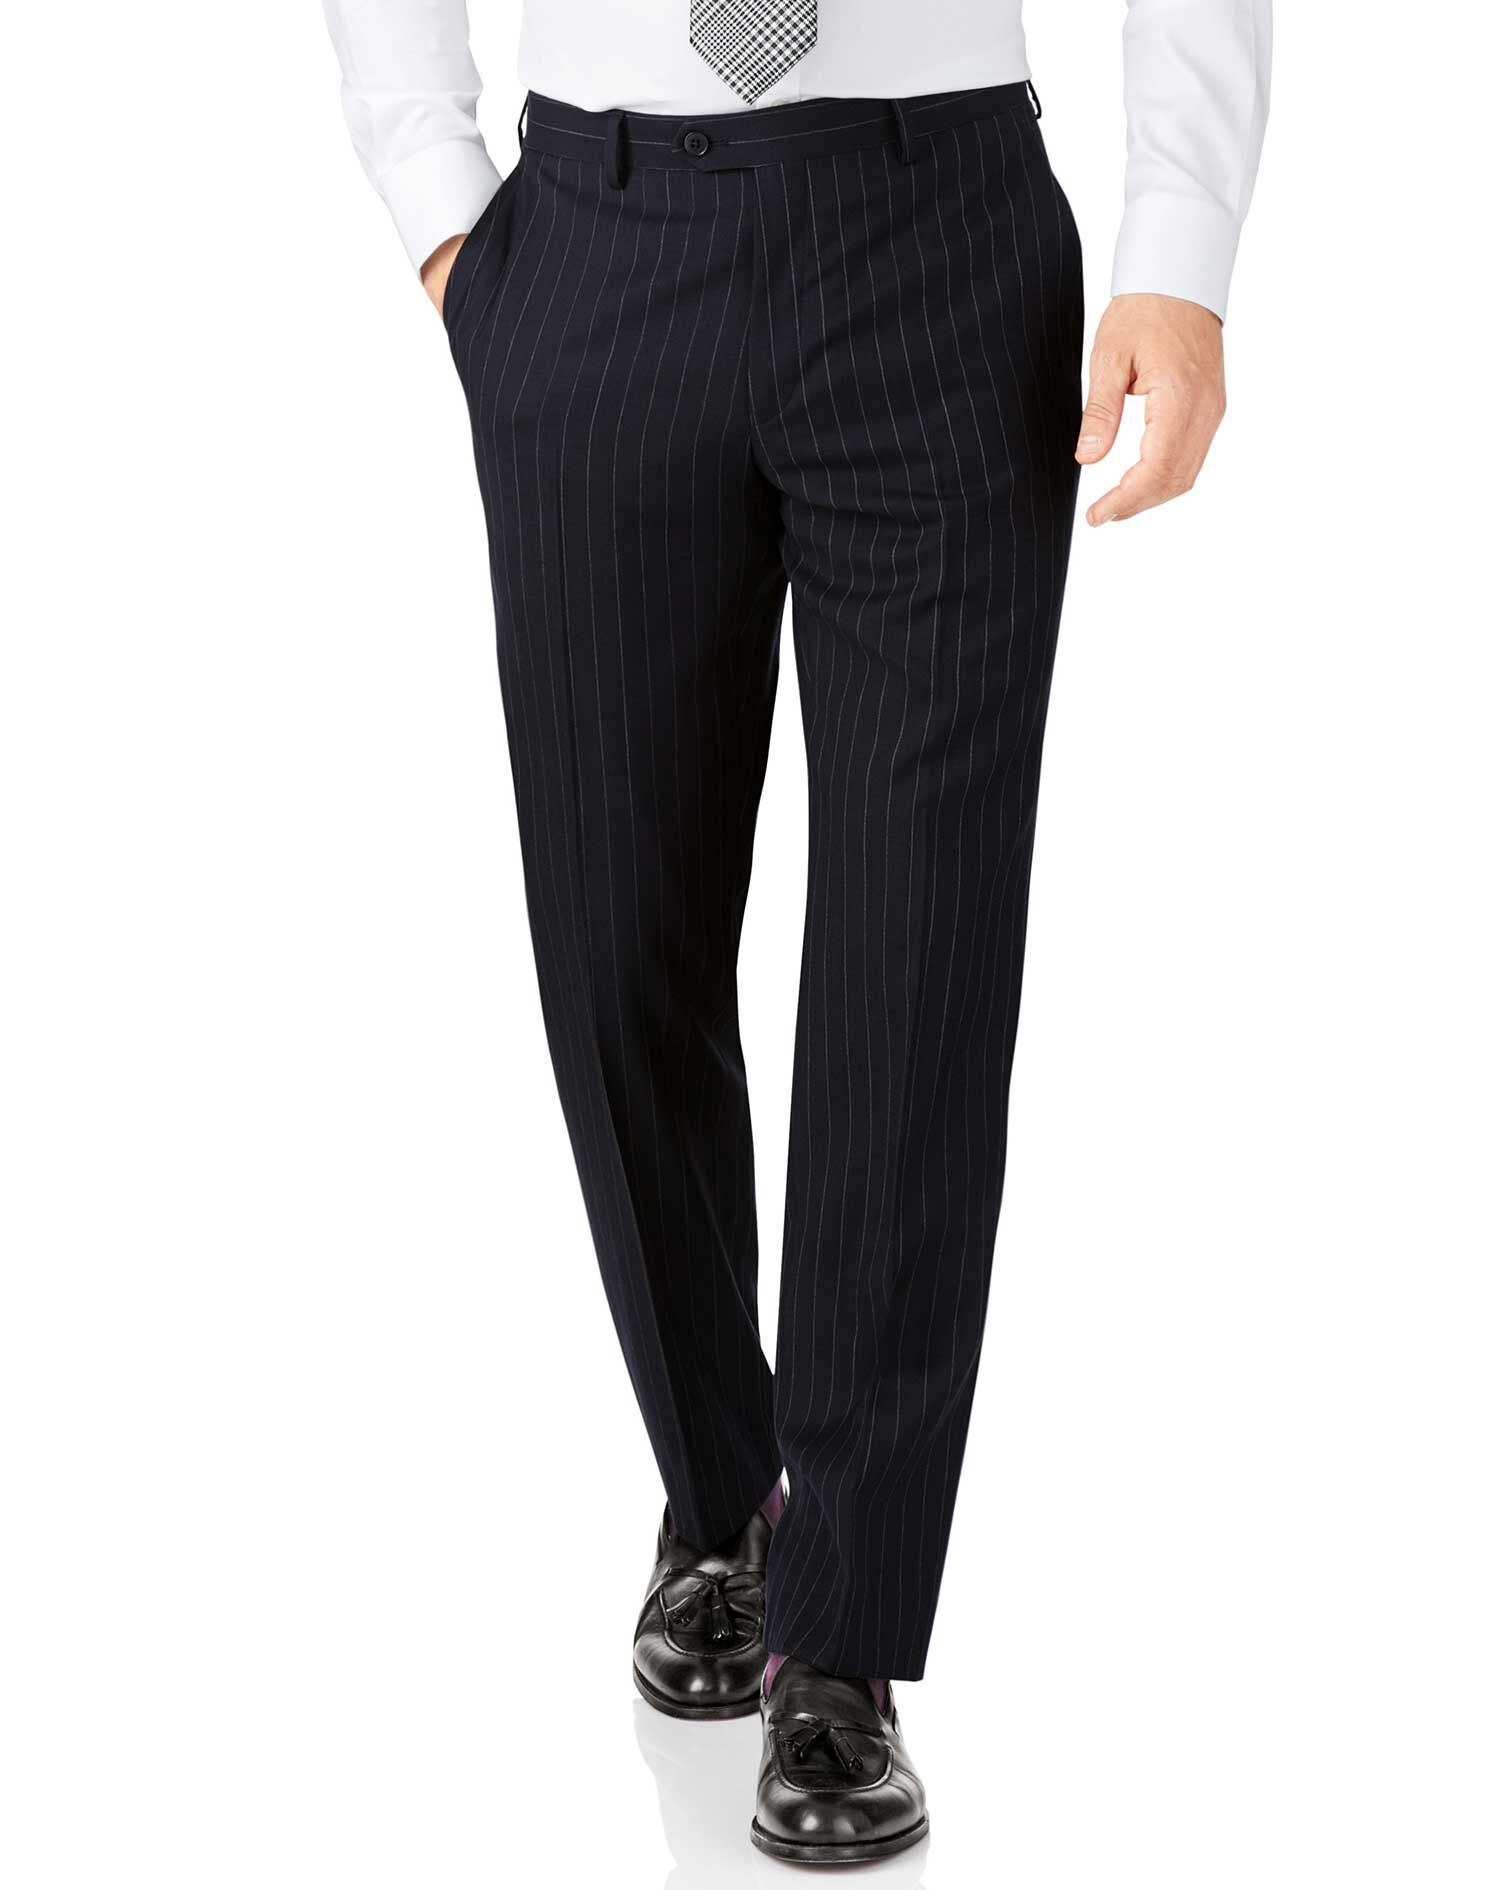 Navy Stripe Classic Fit Twill Business Suit Trousers Size W34 L34 by Charles Tyrwhitt